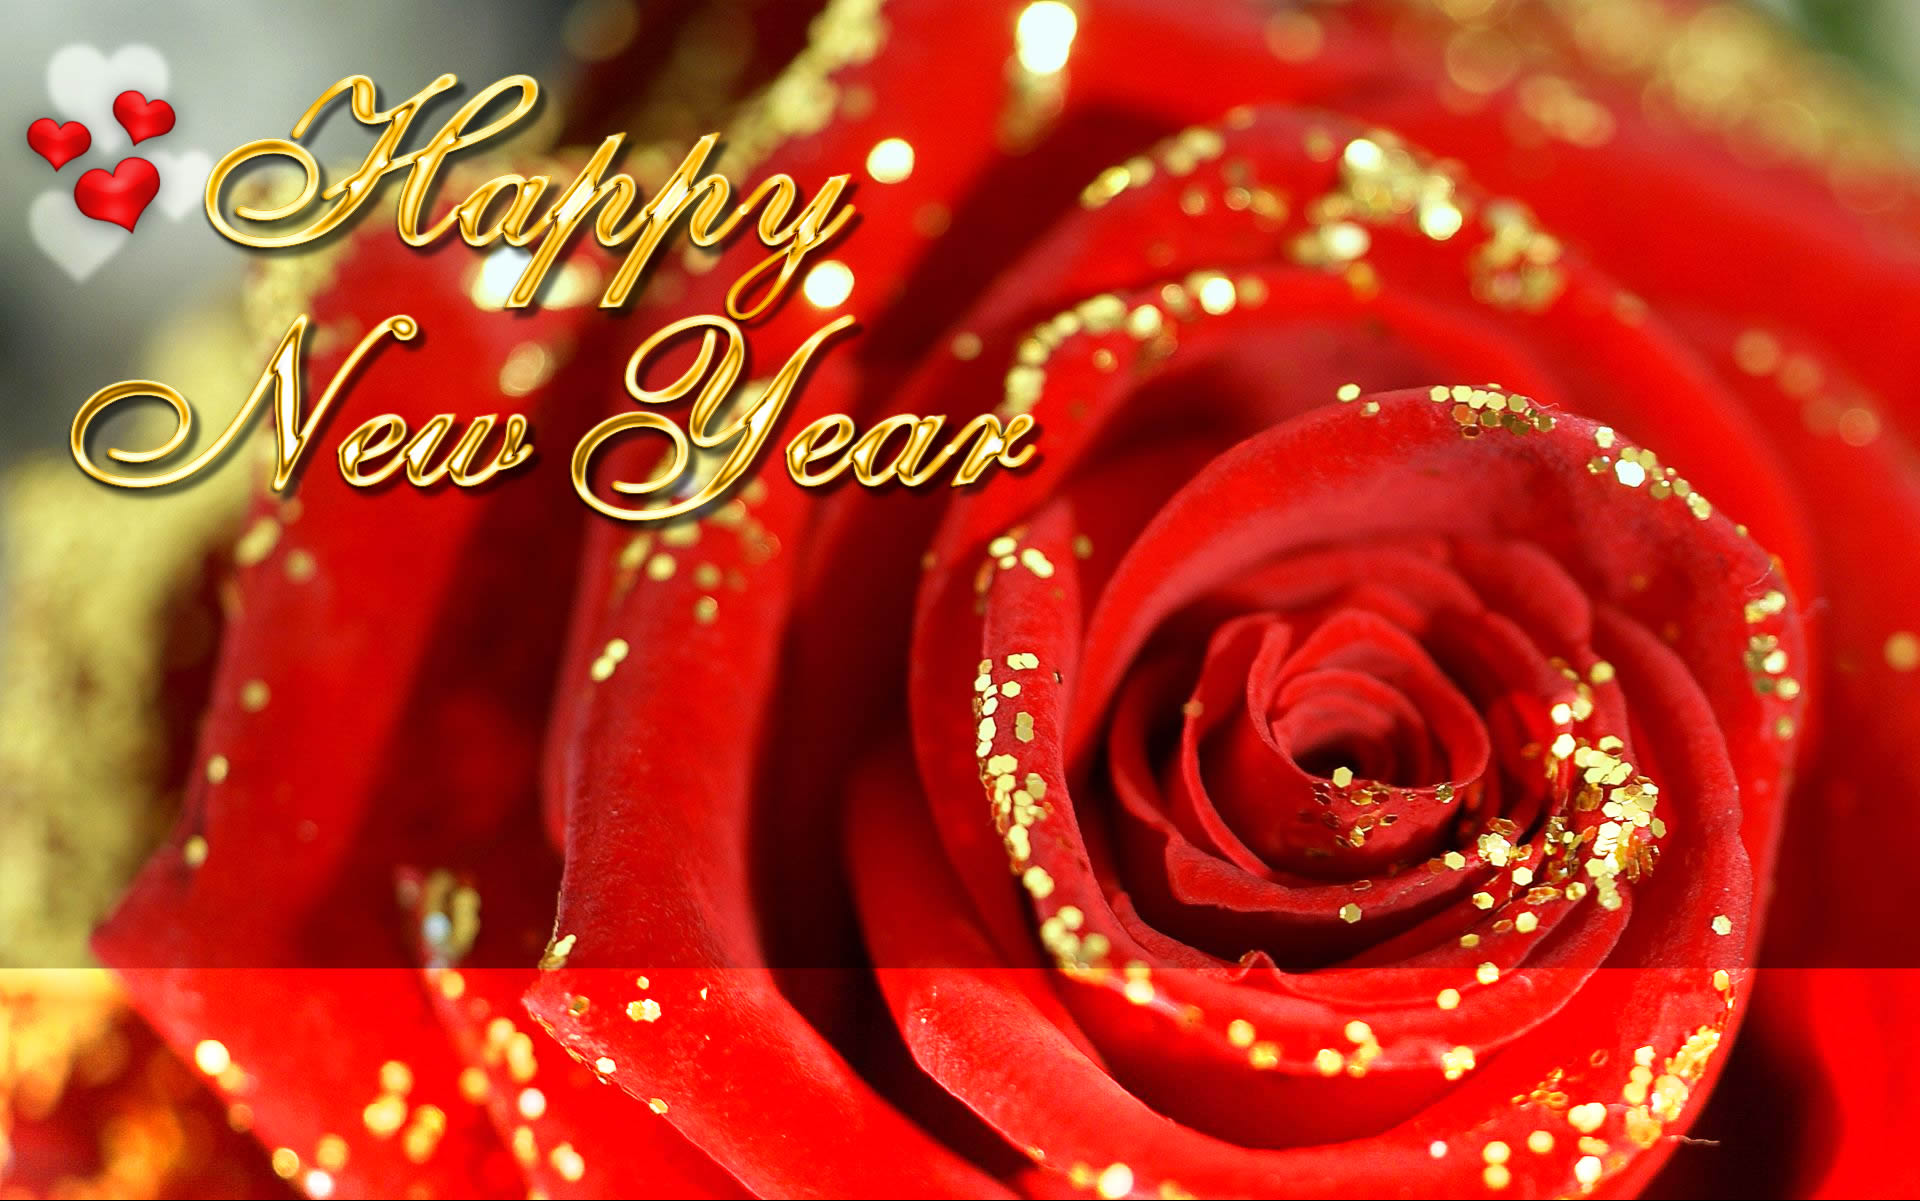 Happy New Year 2015 Rose Images